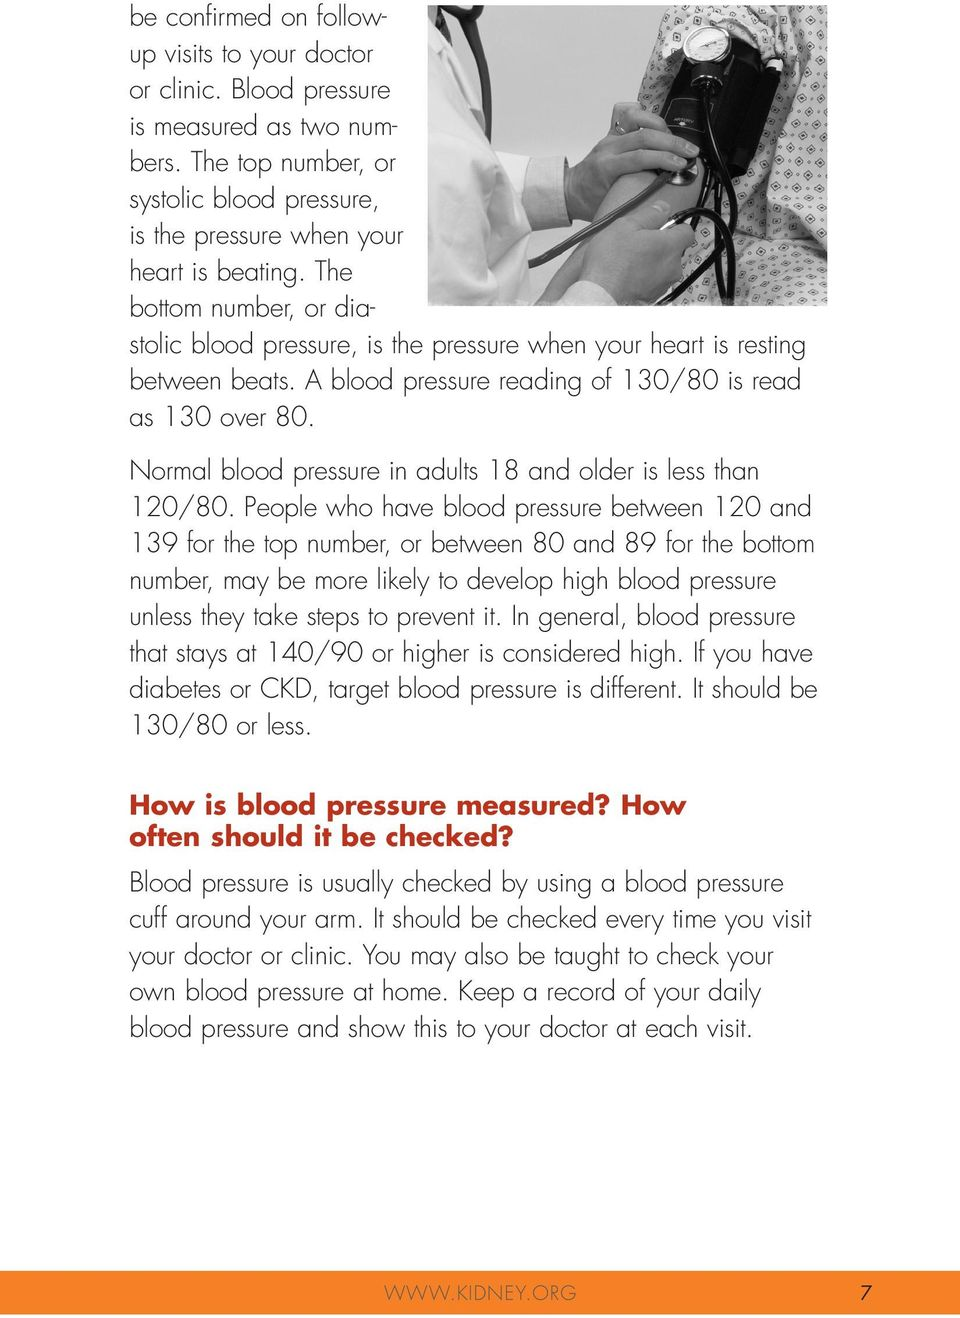 Normal blood pressure in adults 18 and older is less than 120/80.